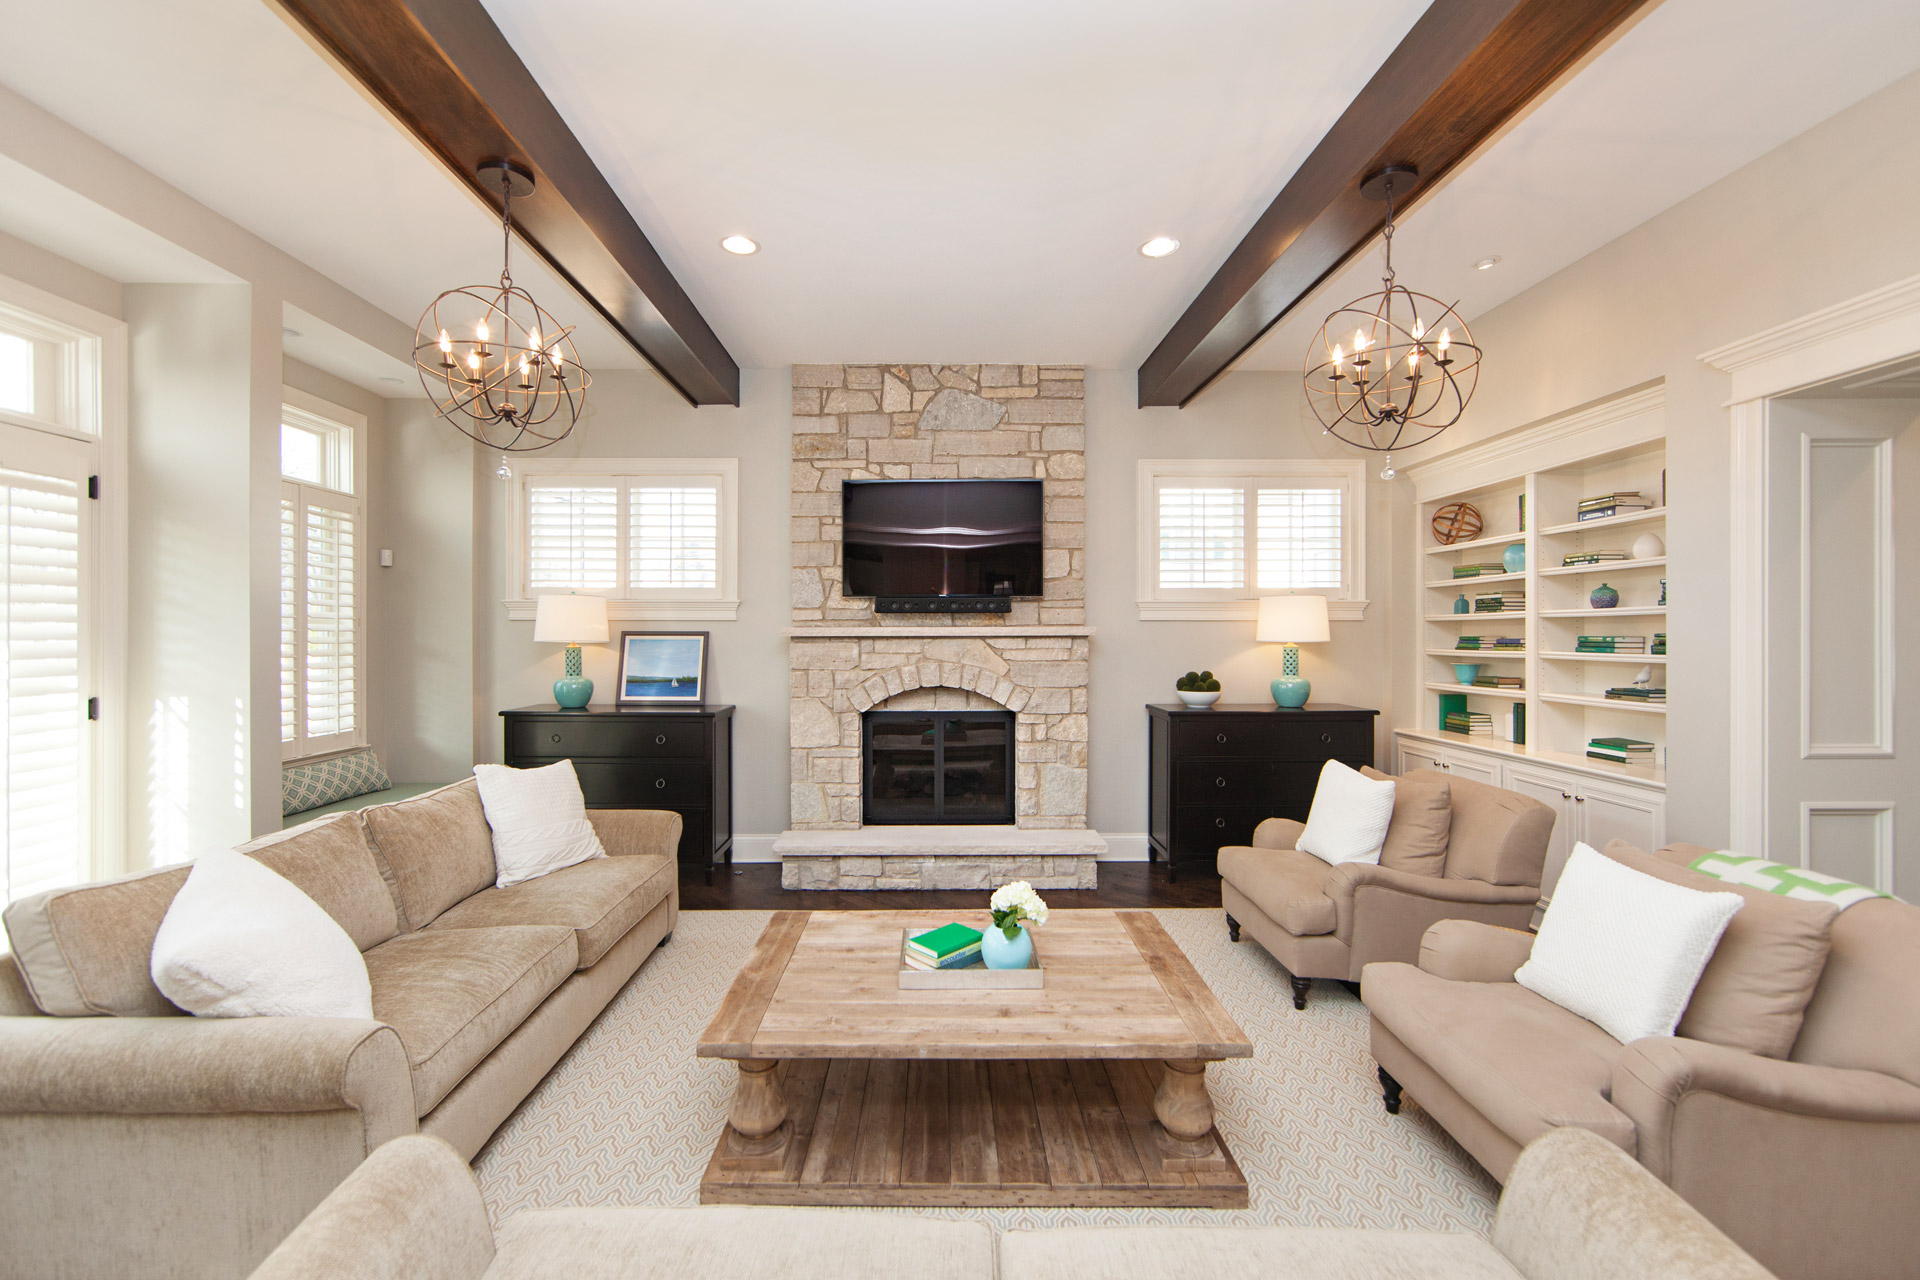 st charles steel kitchen cabinets lowes ceiling light fixtures chicago illinois interior photographers custom luxury home ...